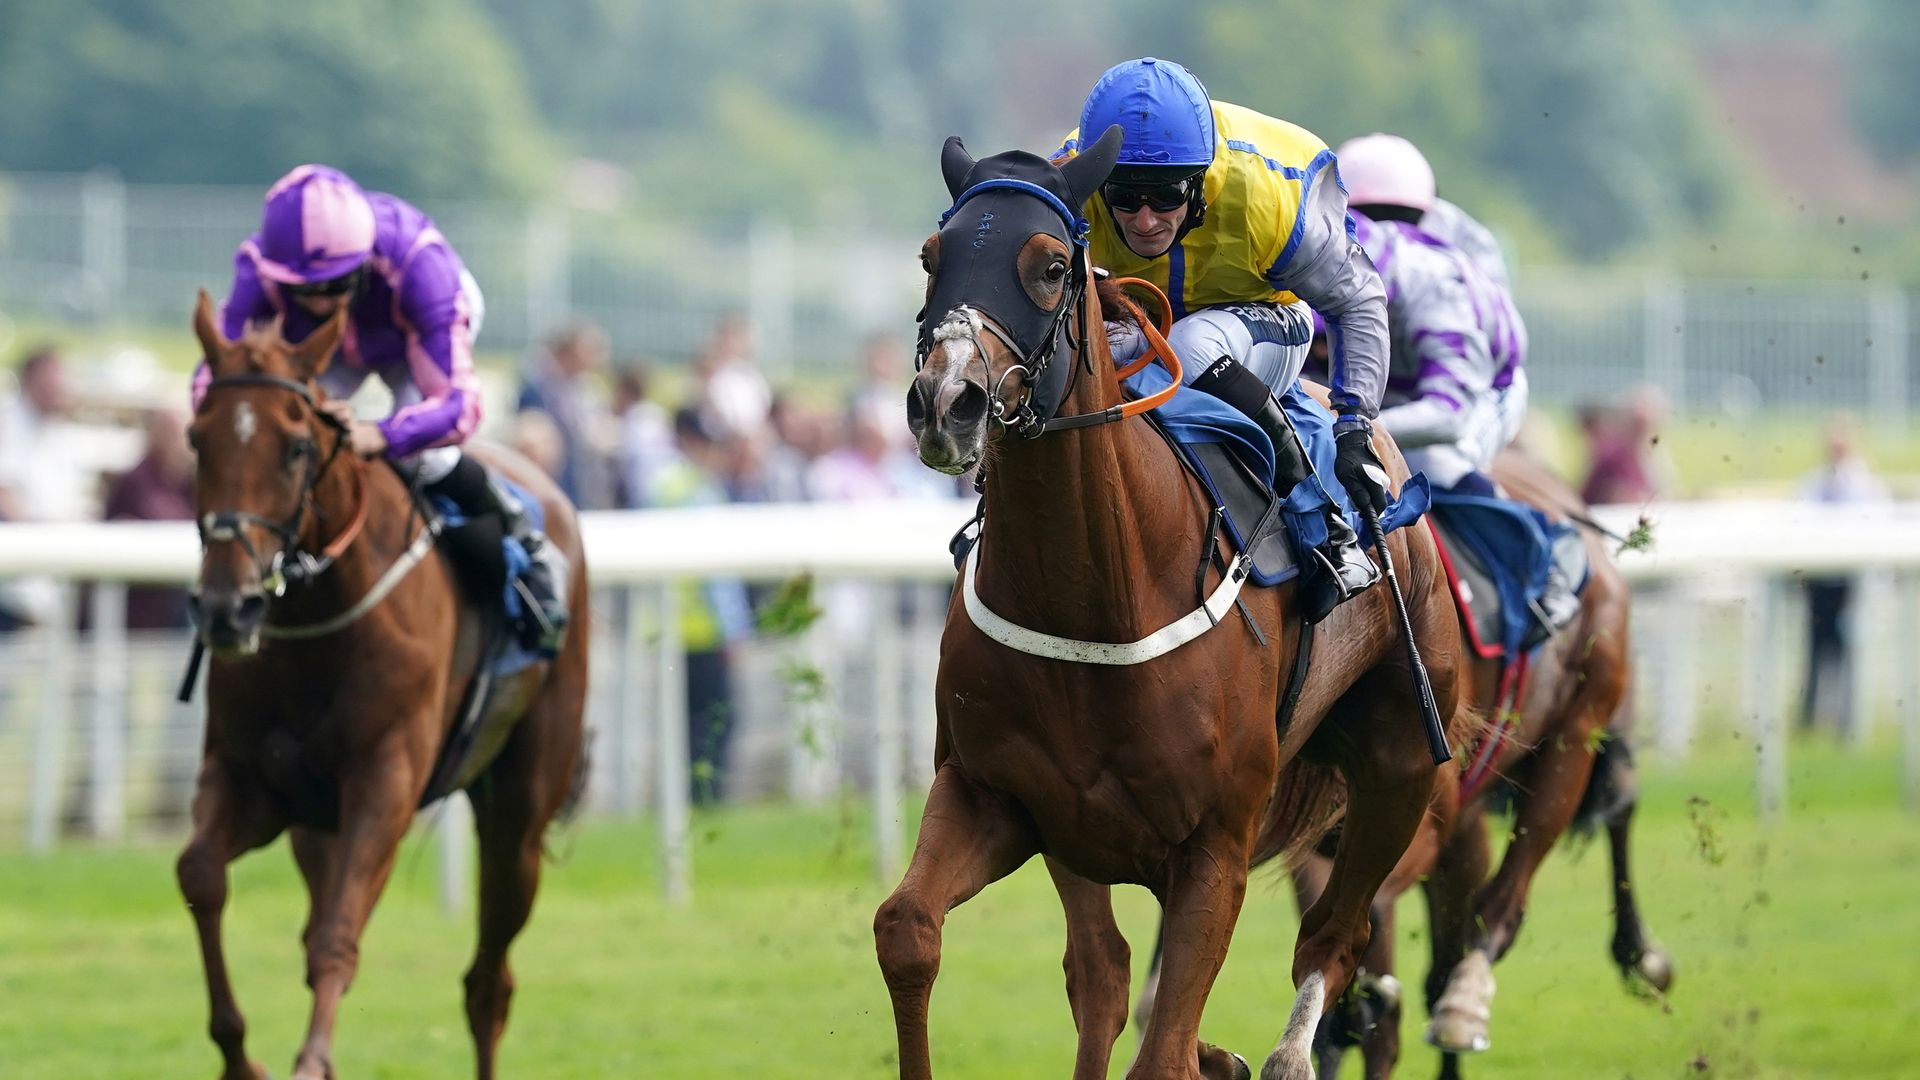 Cesarewitch in the mix for McCain's Goobinator